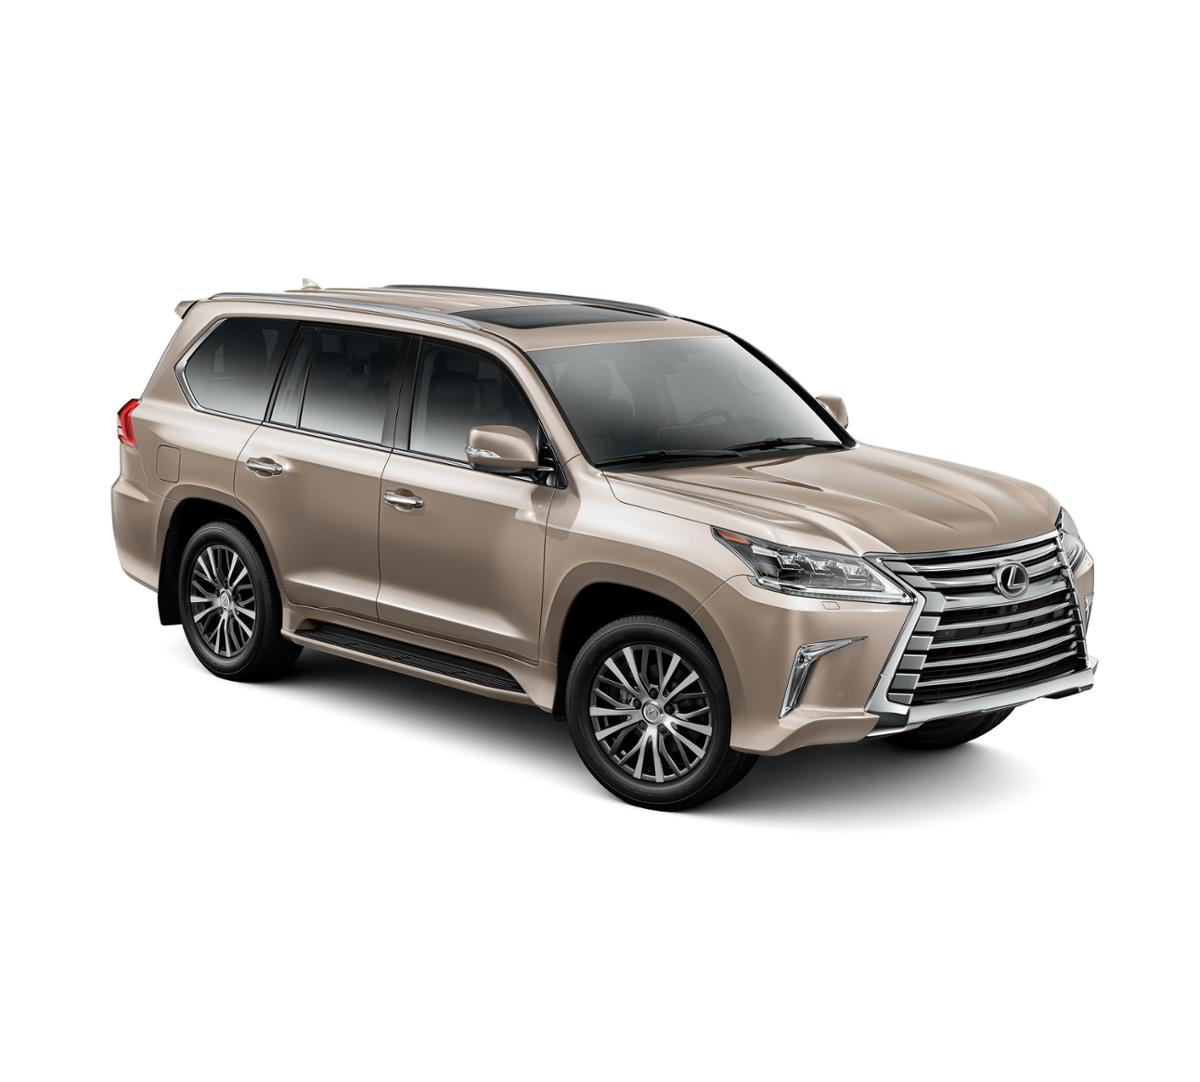 2017 lexus lx 570 in satin cashmere metallic for sale in lakeway texas jtjhy7ax7h4231110. Black Bedroom Furniture Sets. Home Design Ideas